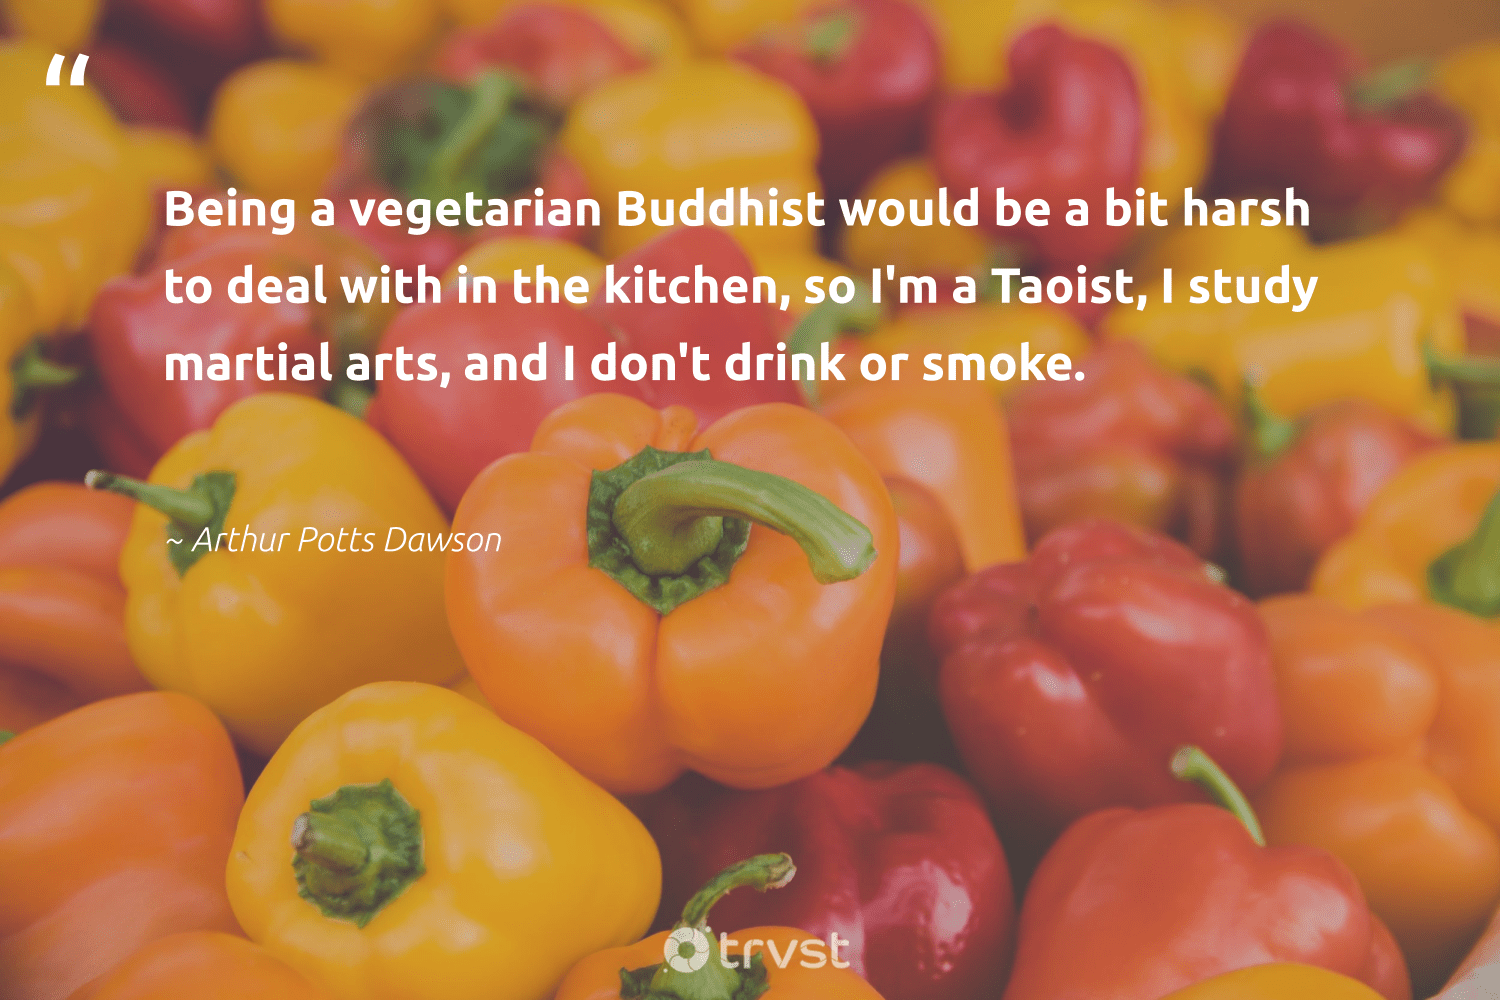 """""""Being a vegetarian Buddhist would be a bit harsh to deal with in the kitchen, so I'm a Taoist, I study martial arts, and I don't drink or smoke.""""  - Arthur Potts Dawson #trvst #quotes #vegan #vegetarian #plantbased #sustainability #gogreen #beinspired #veganfoodshare #greenliving #green #dosomething"""